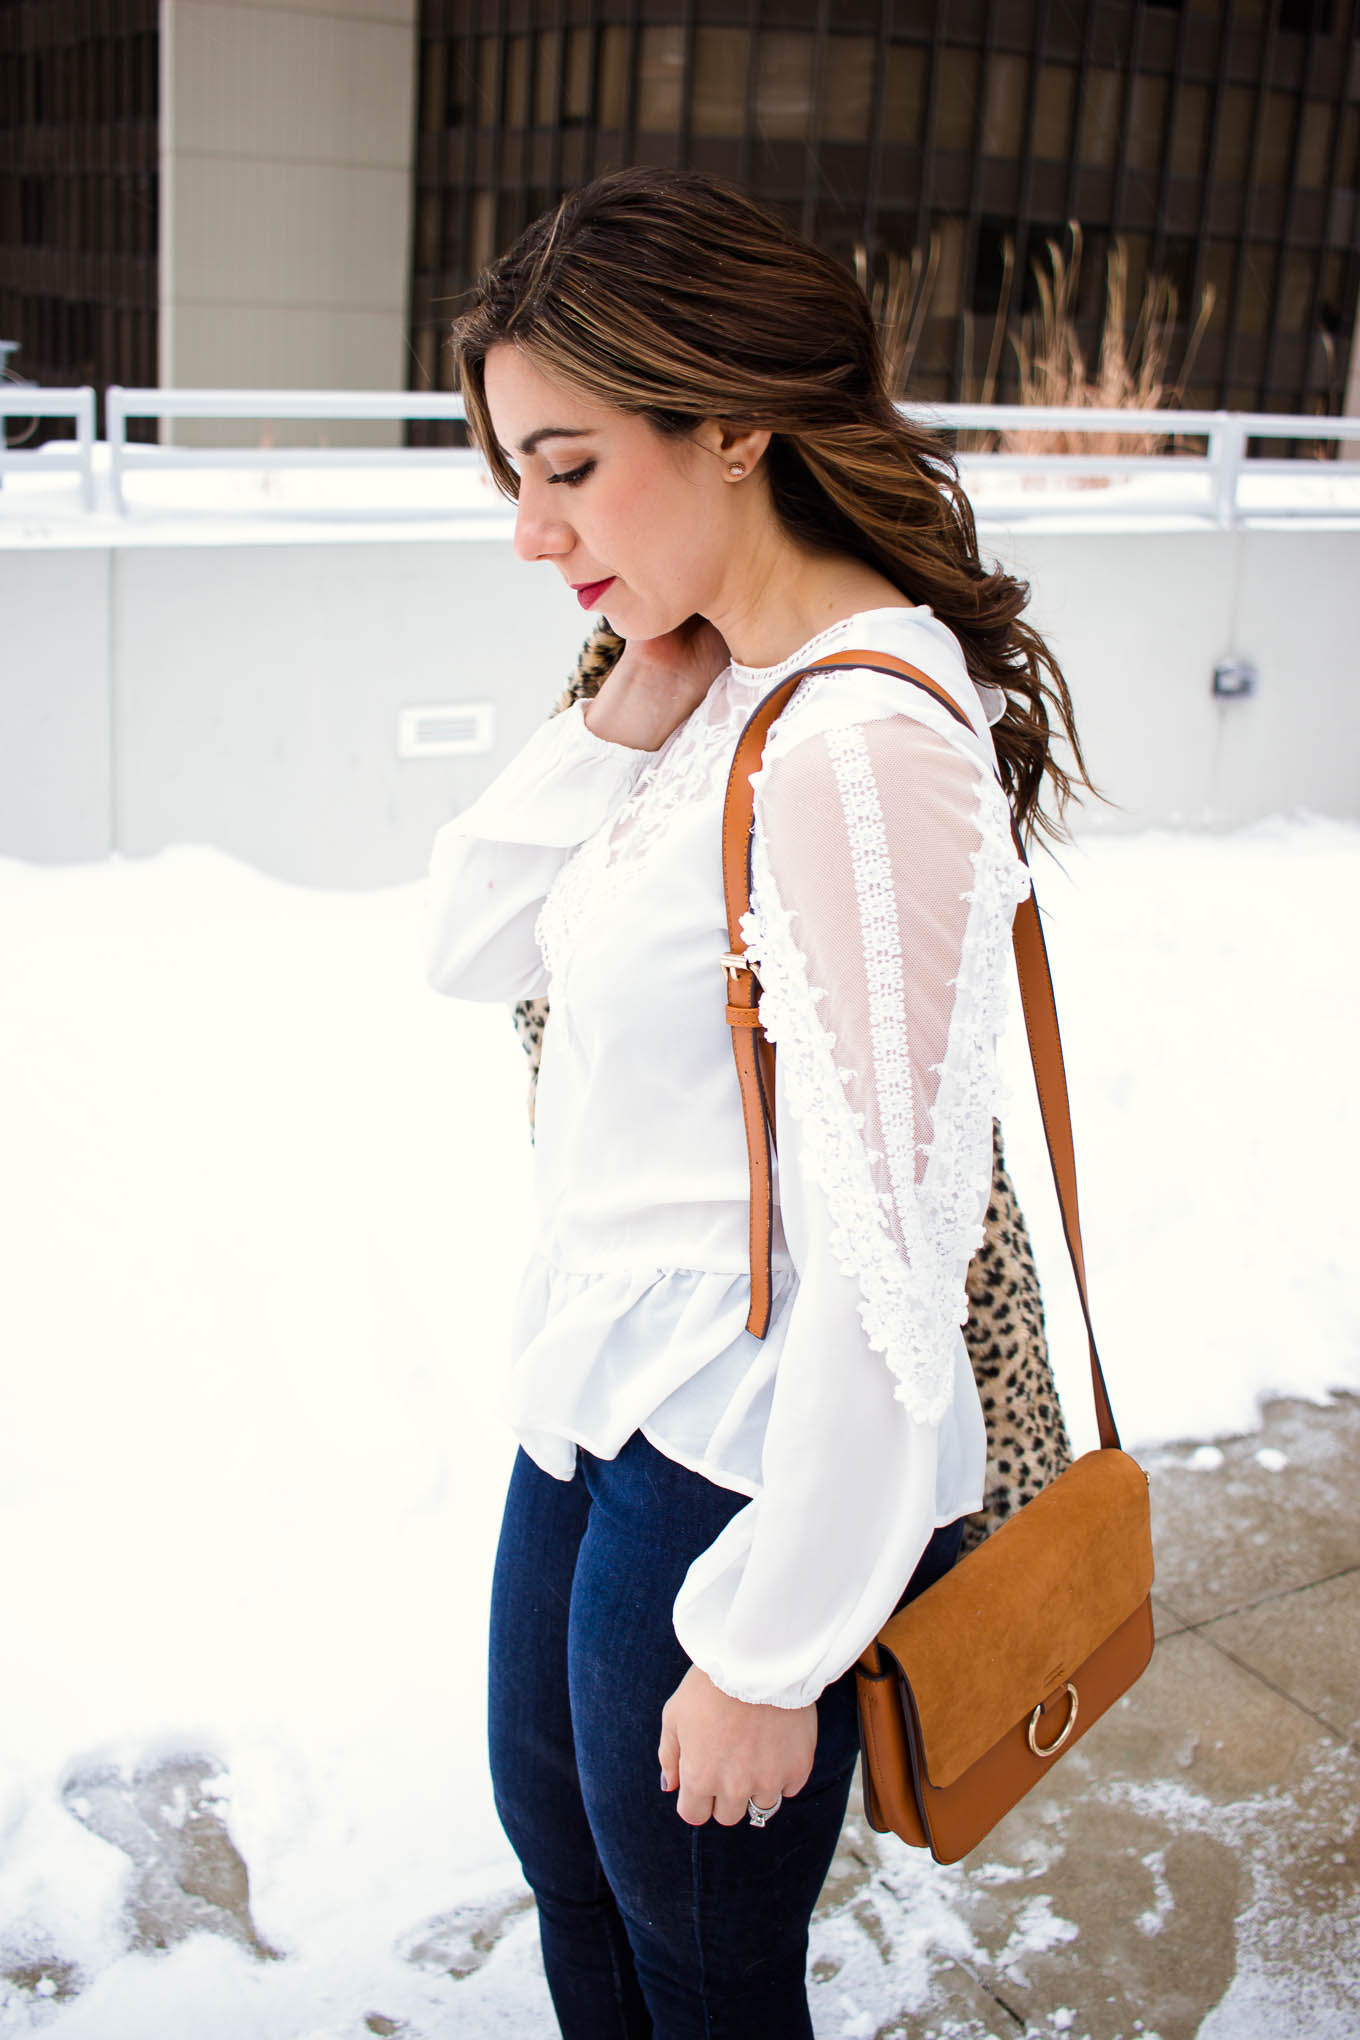 Lifestyle blogger Roxanne of Glass of Glam wearing a white lace Shein top, leopard coat, Mott and Bow denim, and red booties. - Affordable Shopbop Sale Picks by popular Chicago style blogger Glass of Glam